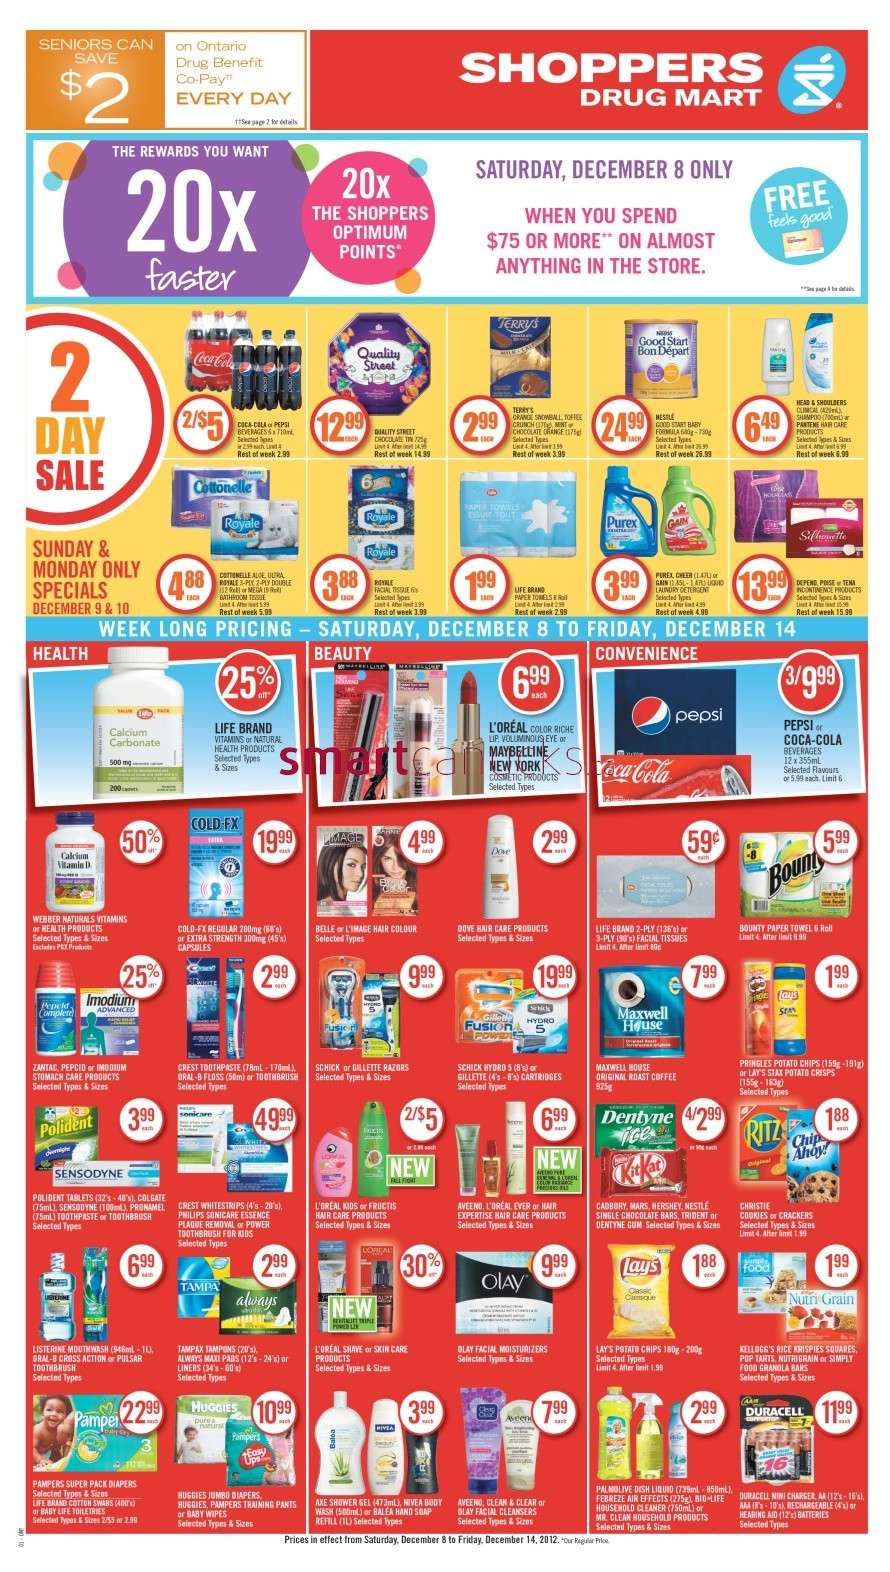 Instead of just 15 points per dollar spent at Shoppers Drug Mart, you'll get those 15 base points PLUS an additional 10 points for a total of 25 points per dollar! Full Week Deals (September 1 – 7): Gain liquid laundry detergent is on sale for just $